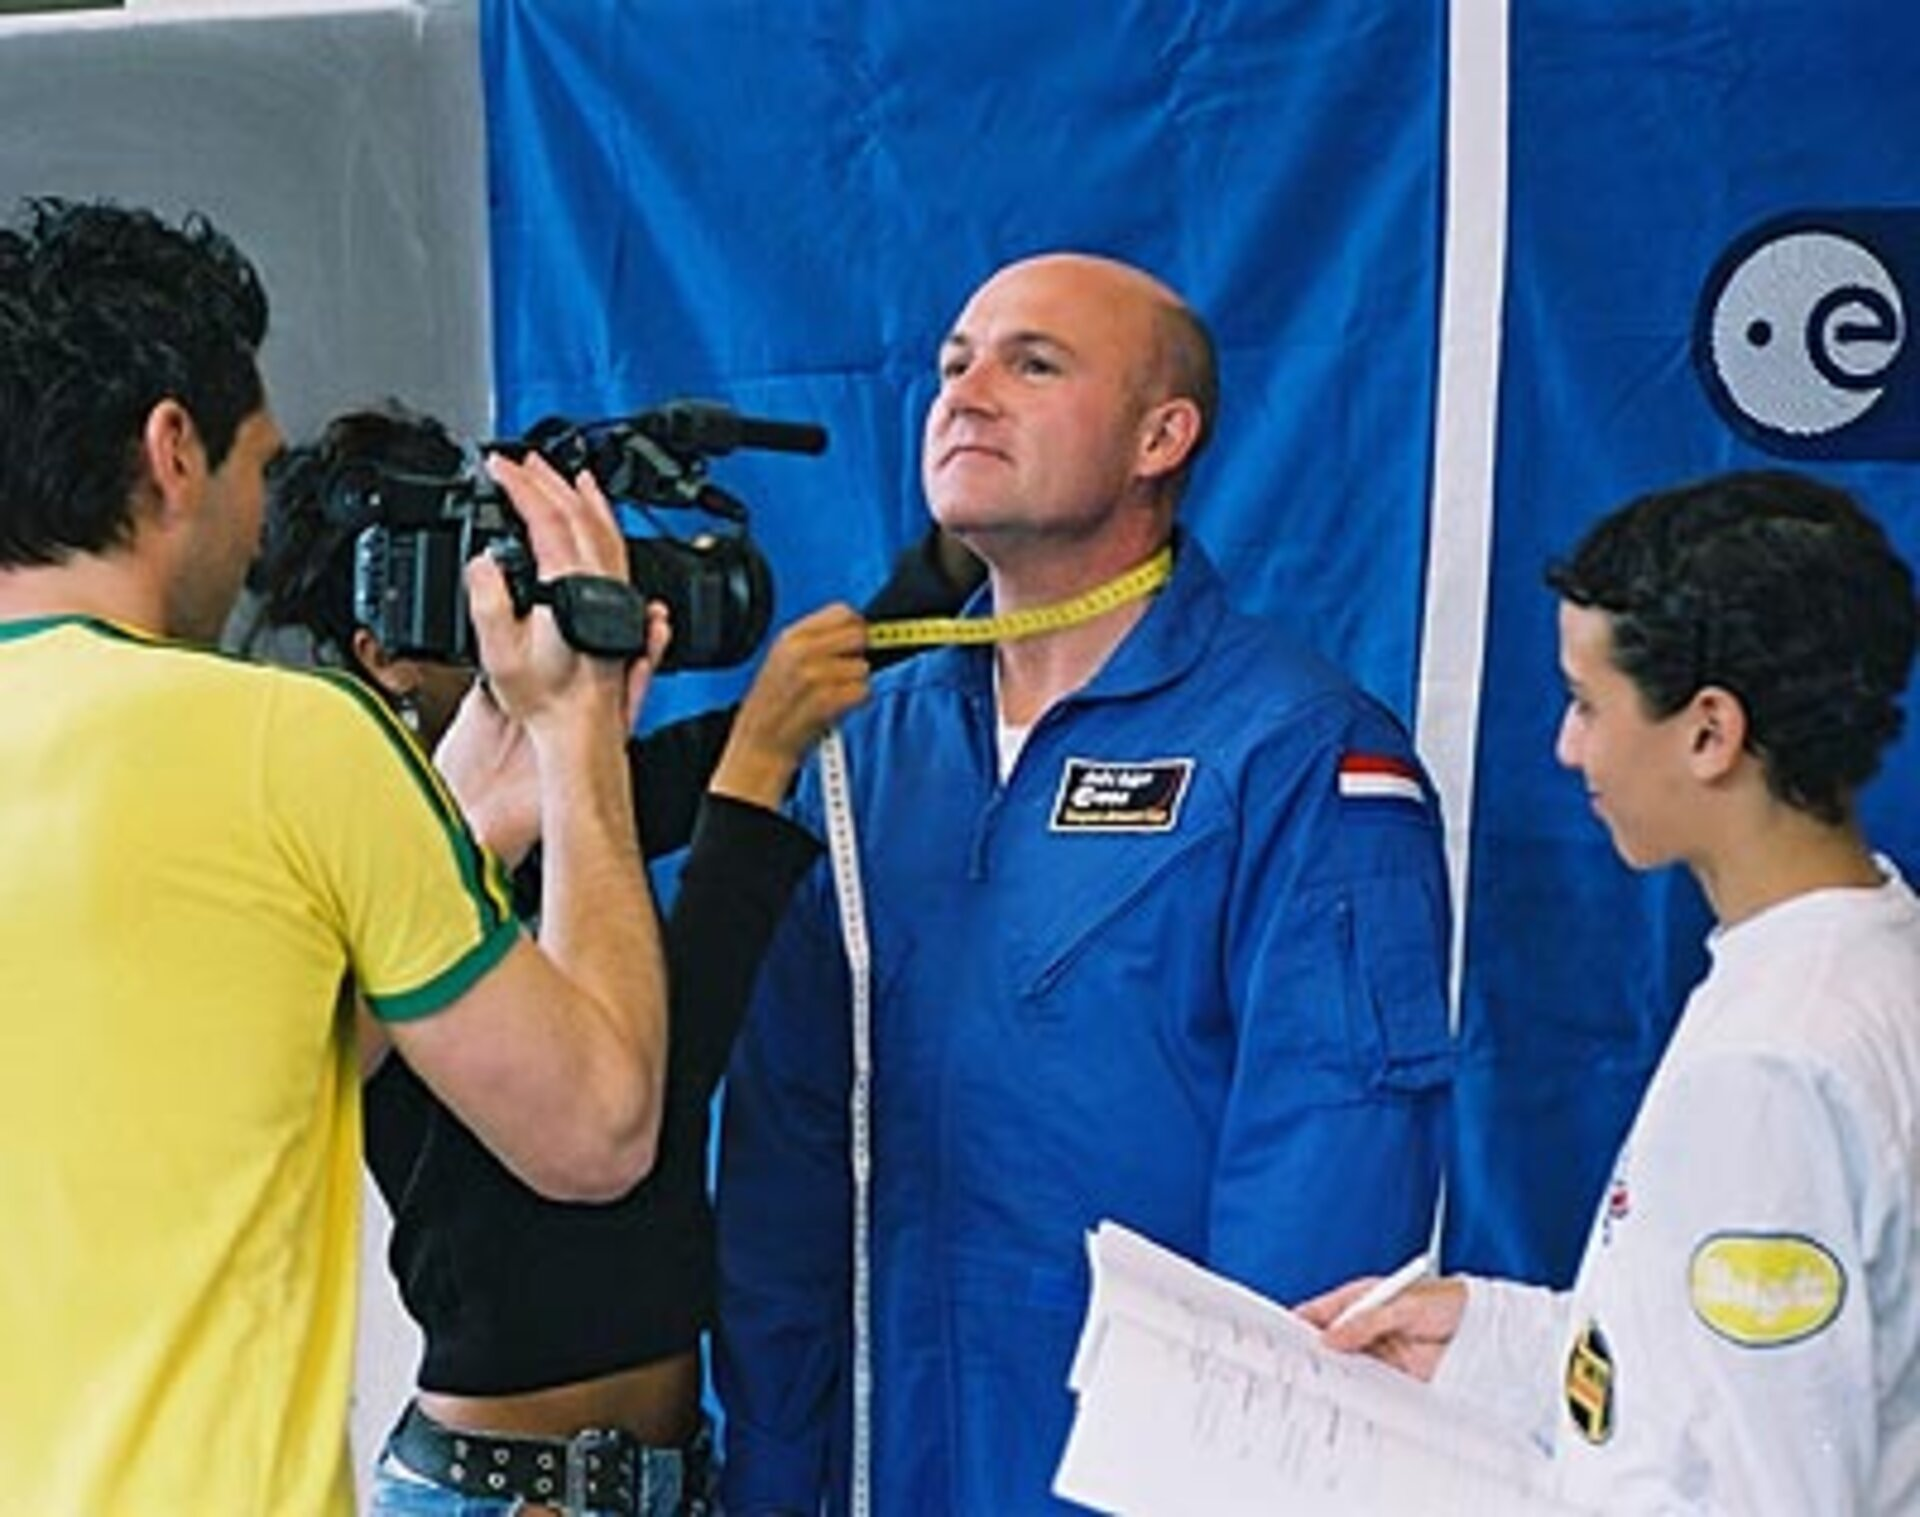 Scenes for ISS DVD Lesson II were filmed with André Kuipers